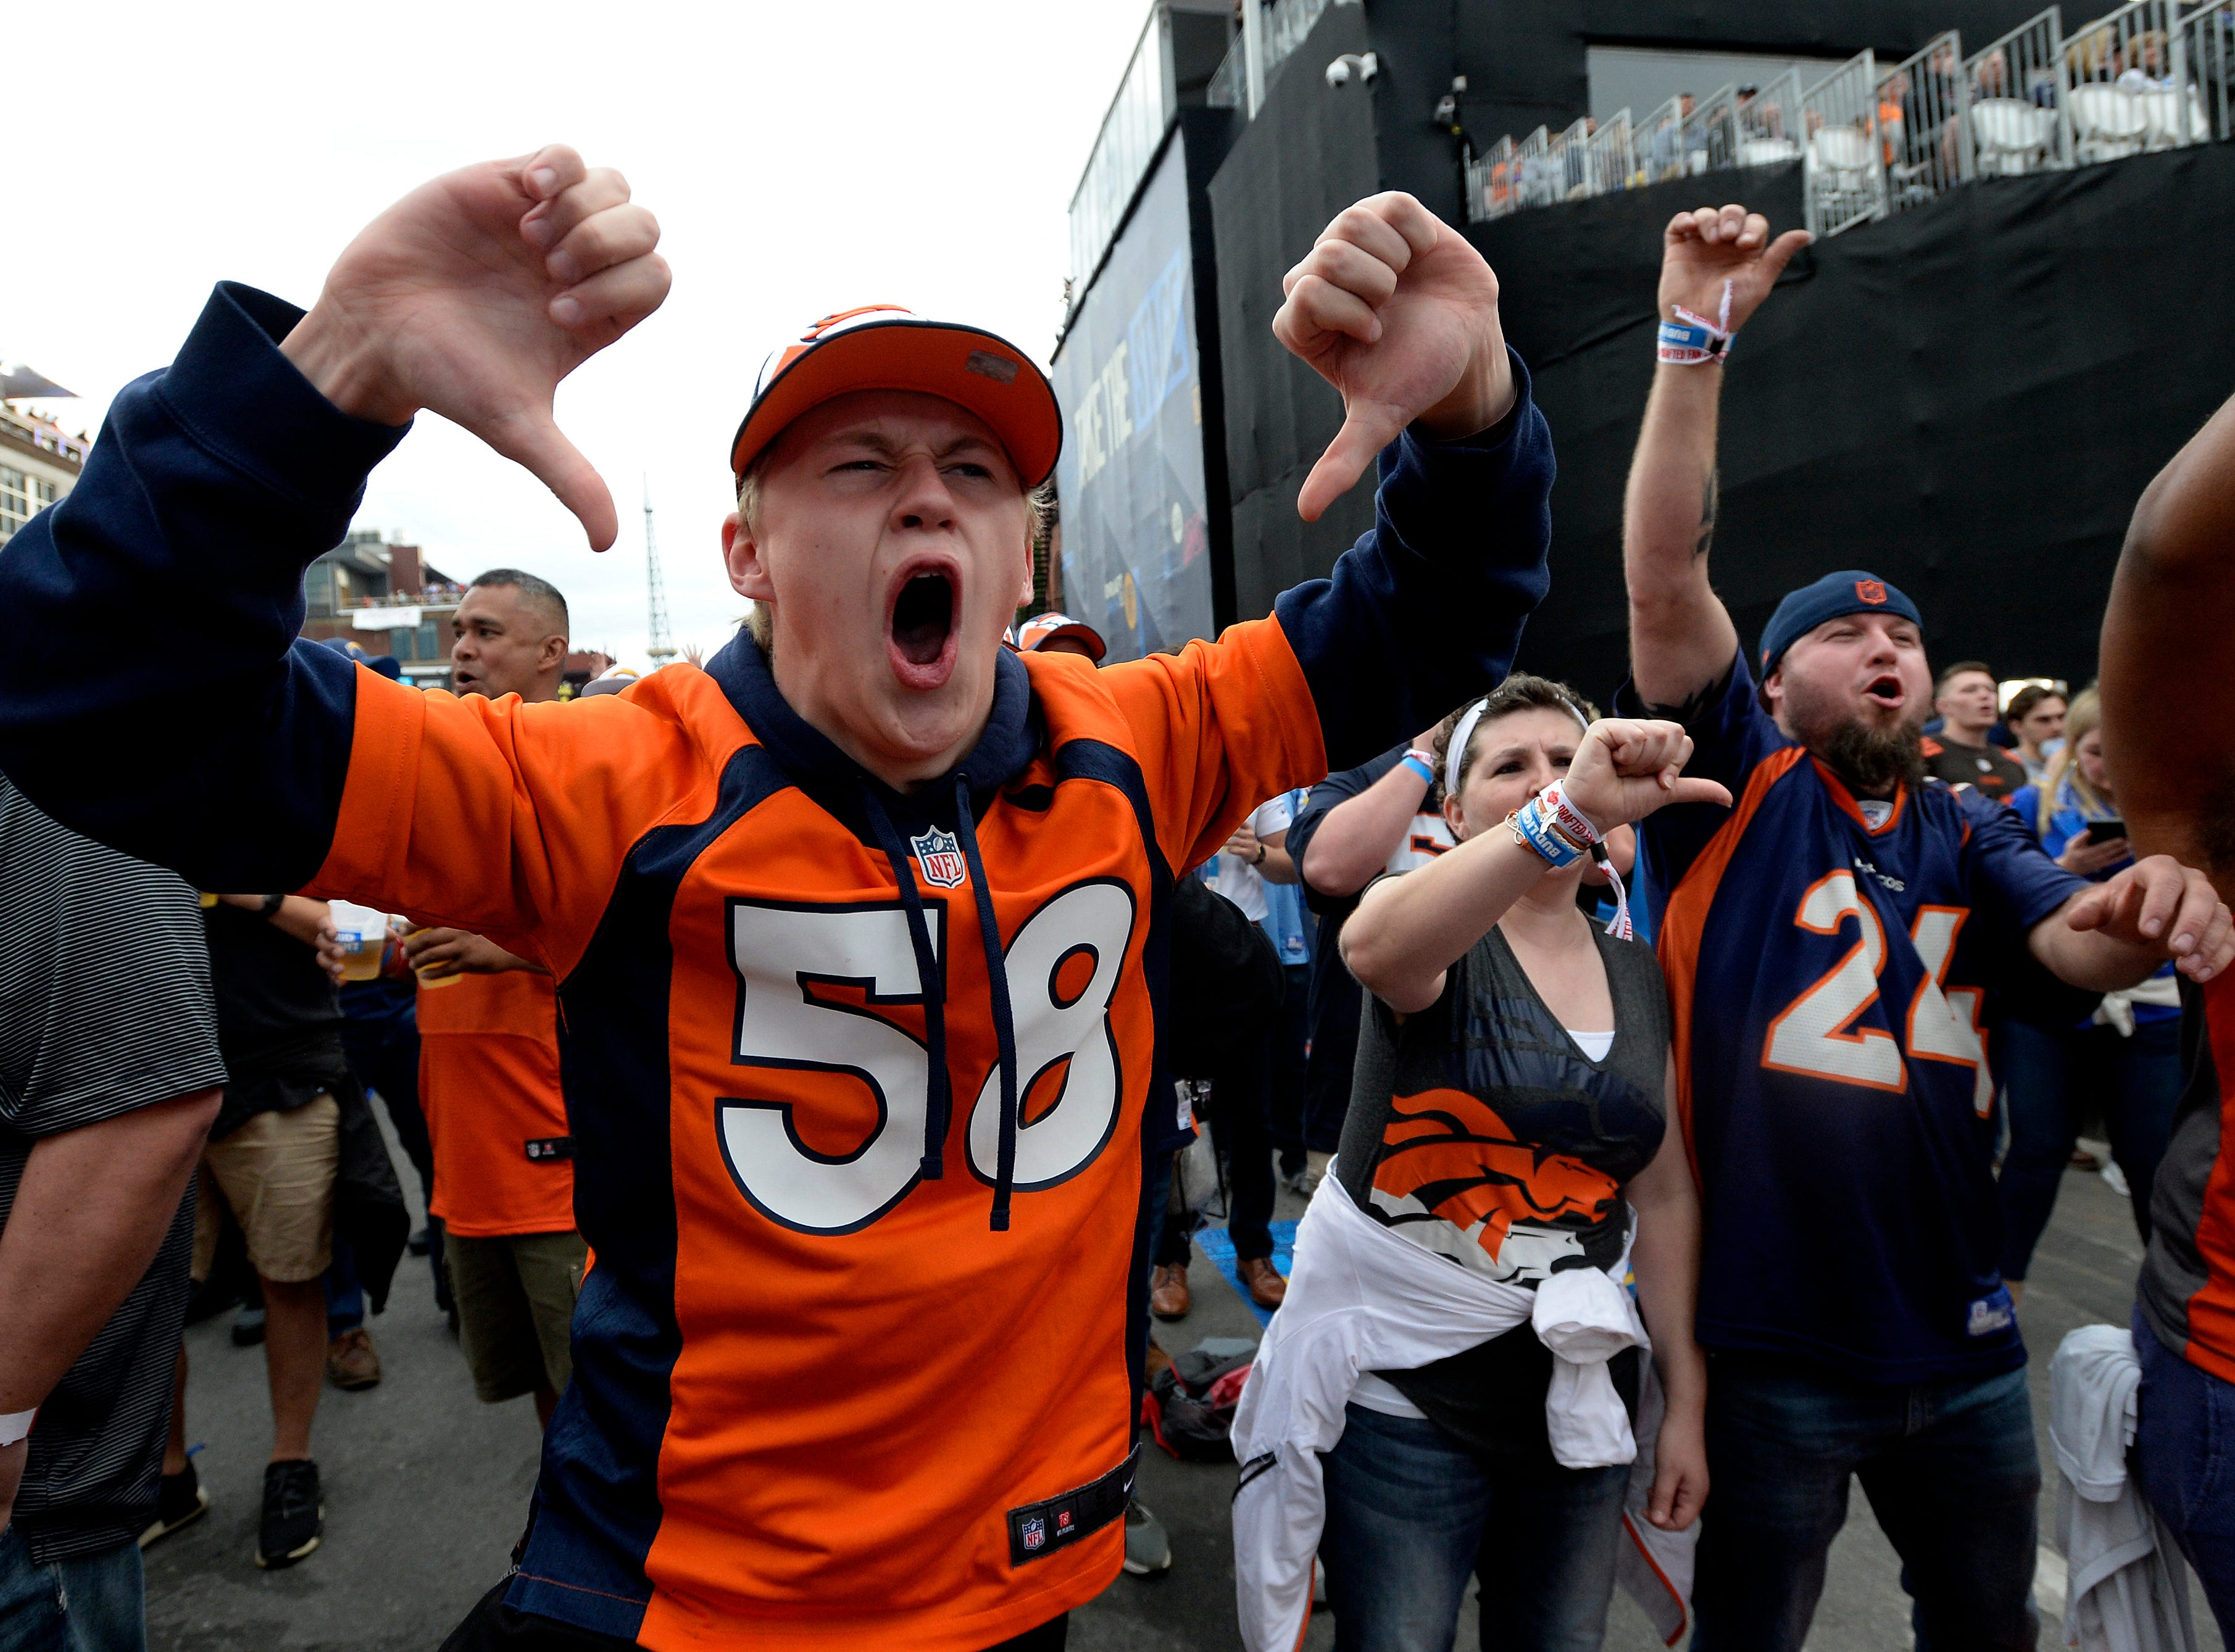 Denver Broncos fan Nick Gashler reacts after the Los Angeles Chargers fans were introduced during the NFL Draft on Thursday, April 25, 2019, in Nashville, Tenn.